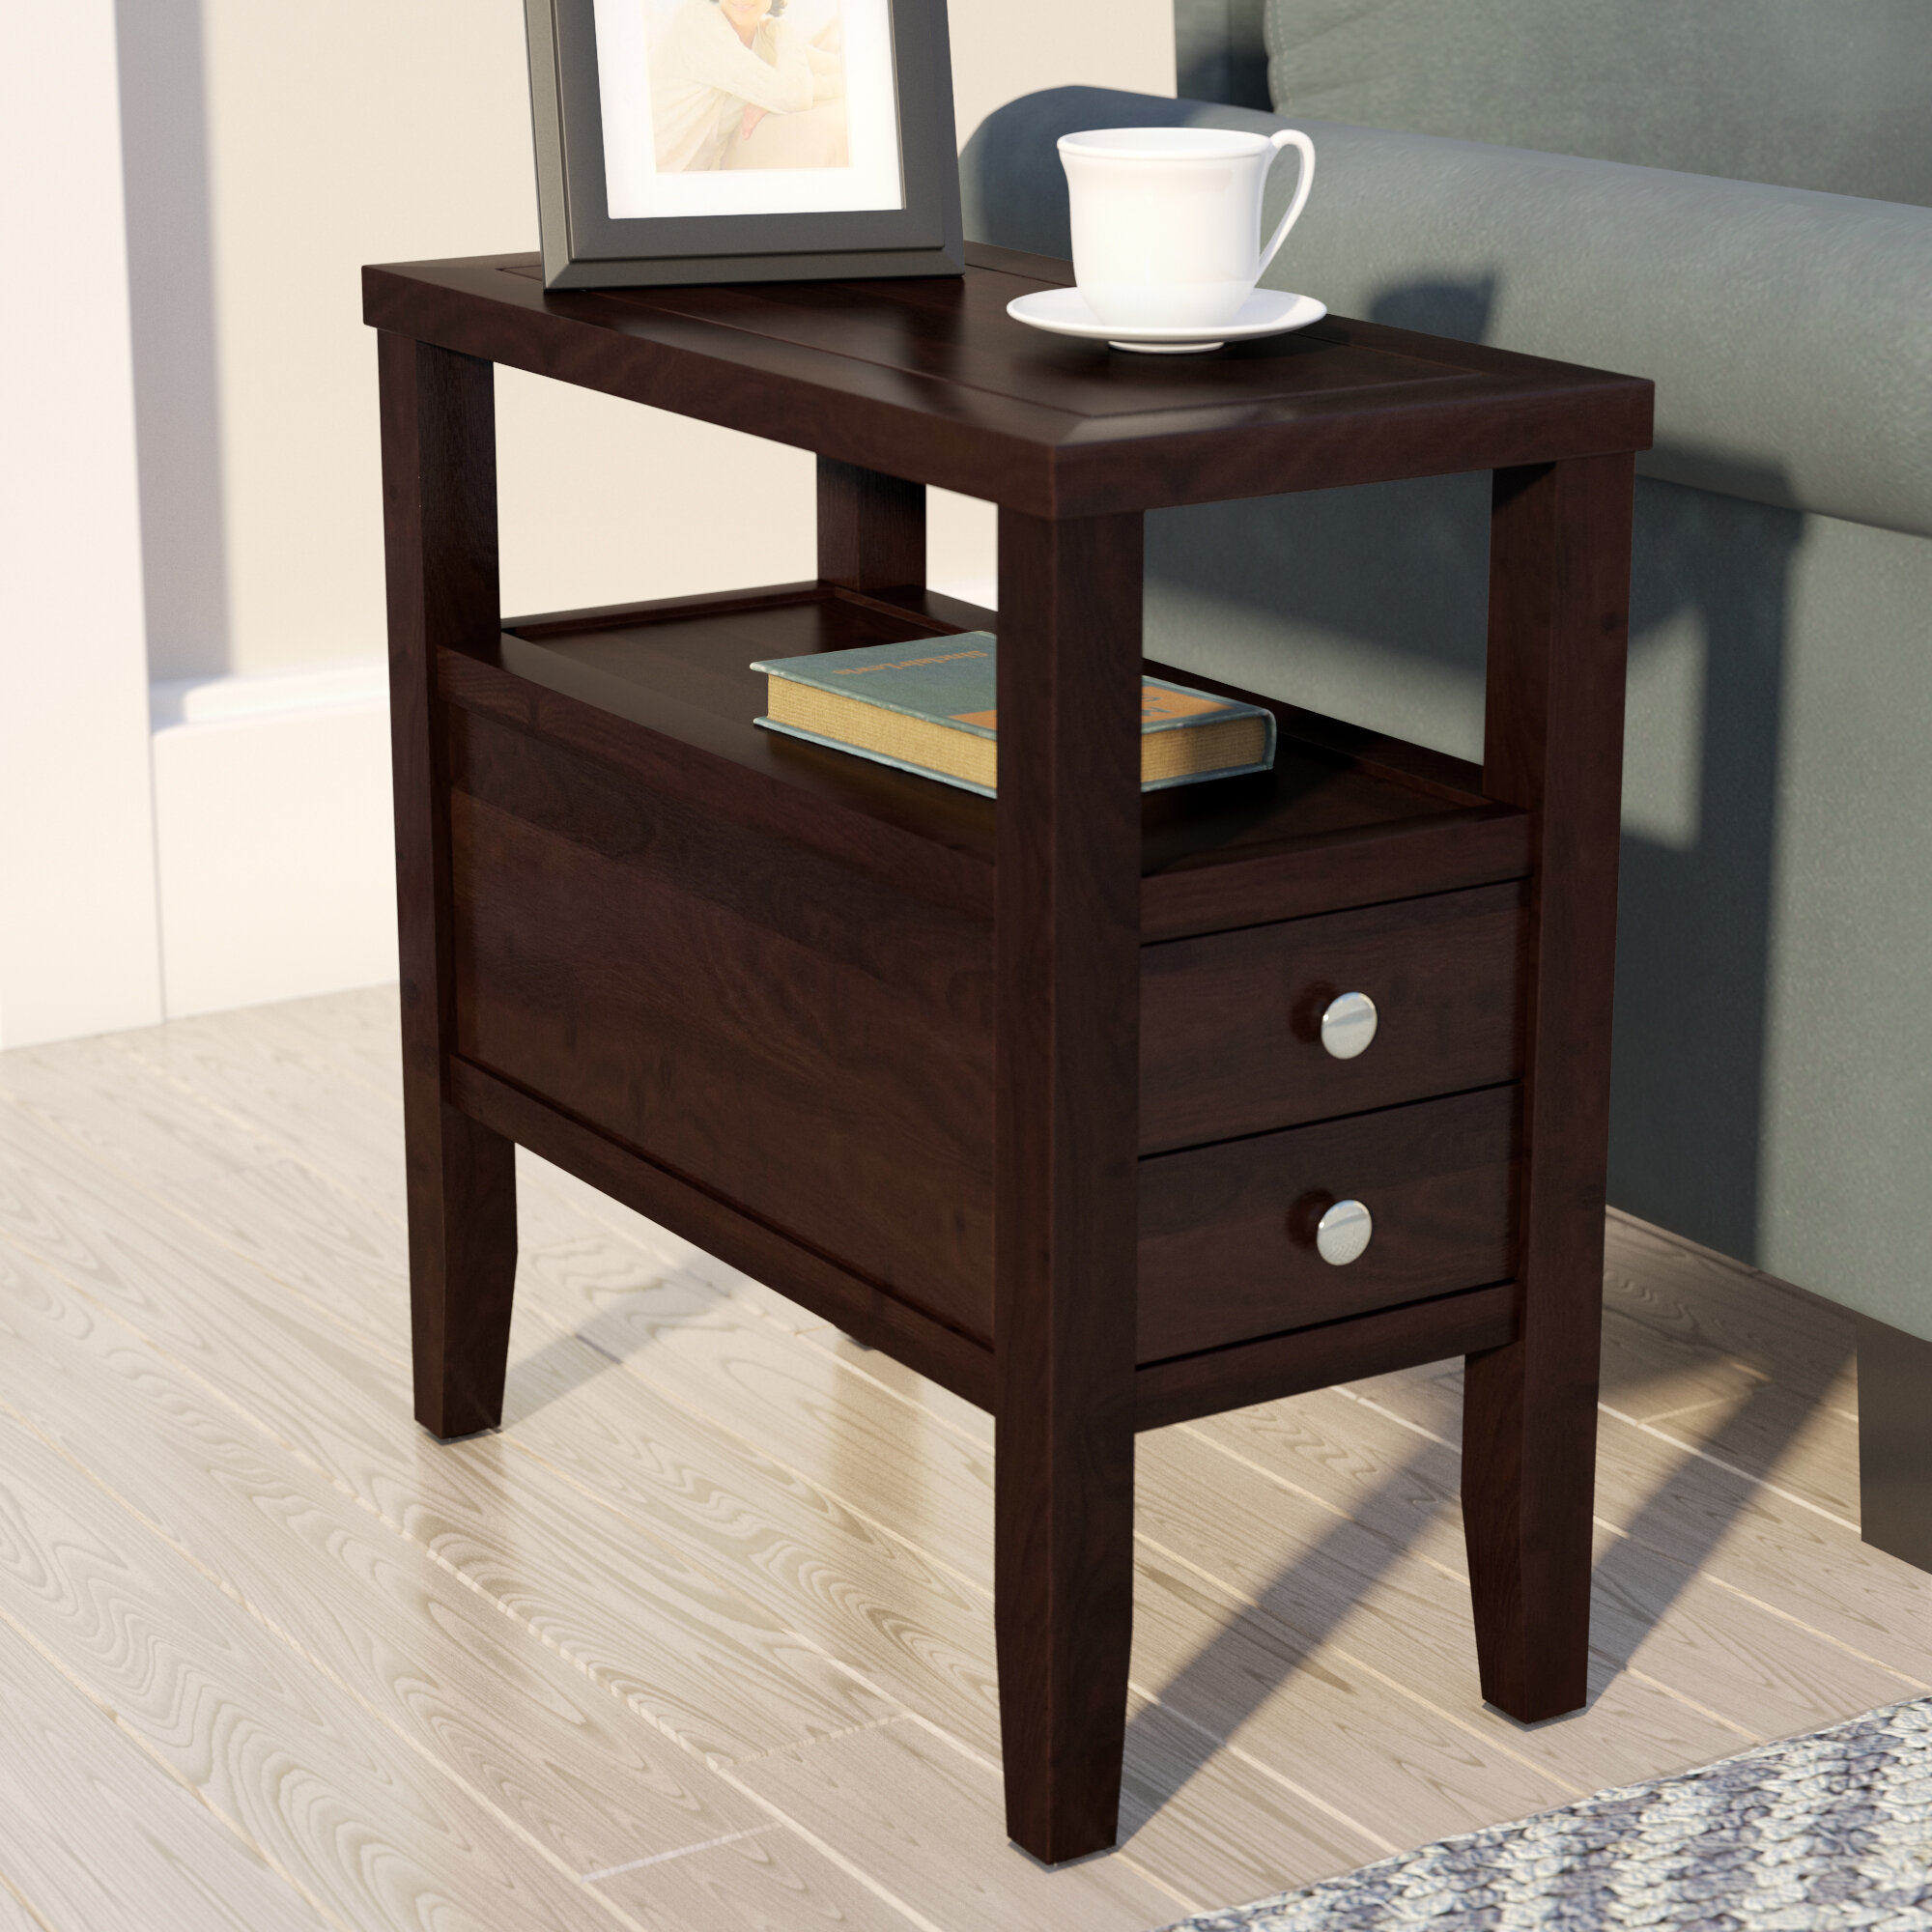 & Andover Mills Gahagan End Table With Storage u0026 Reviews | Wayfair